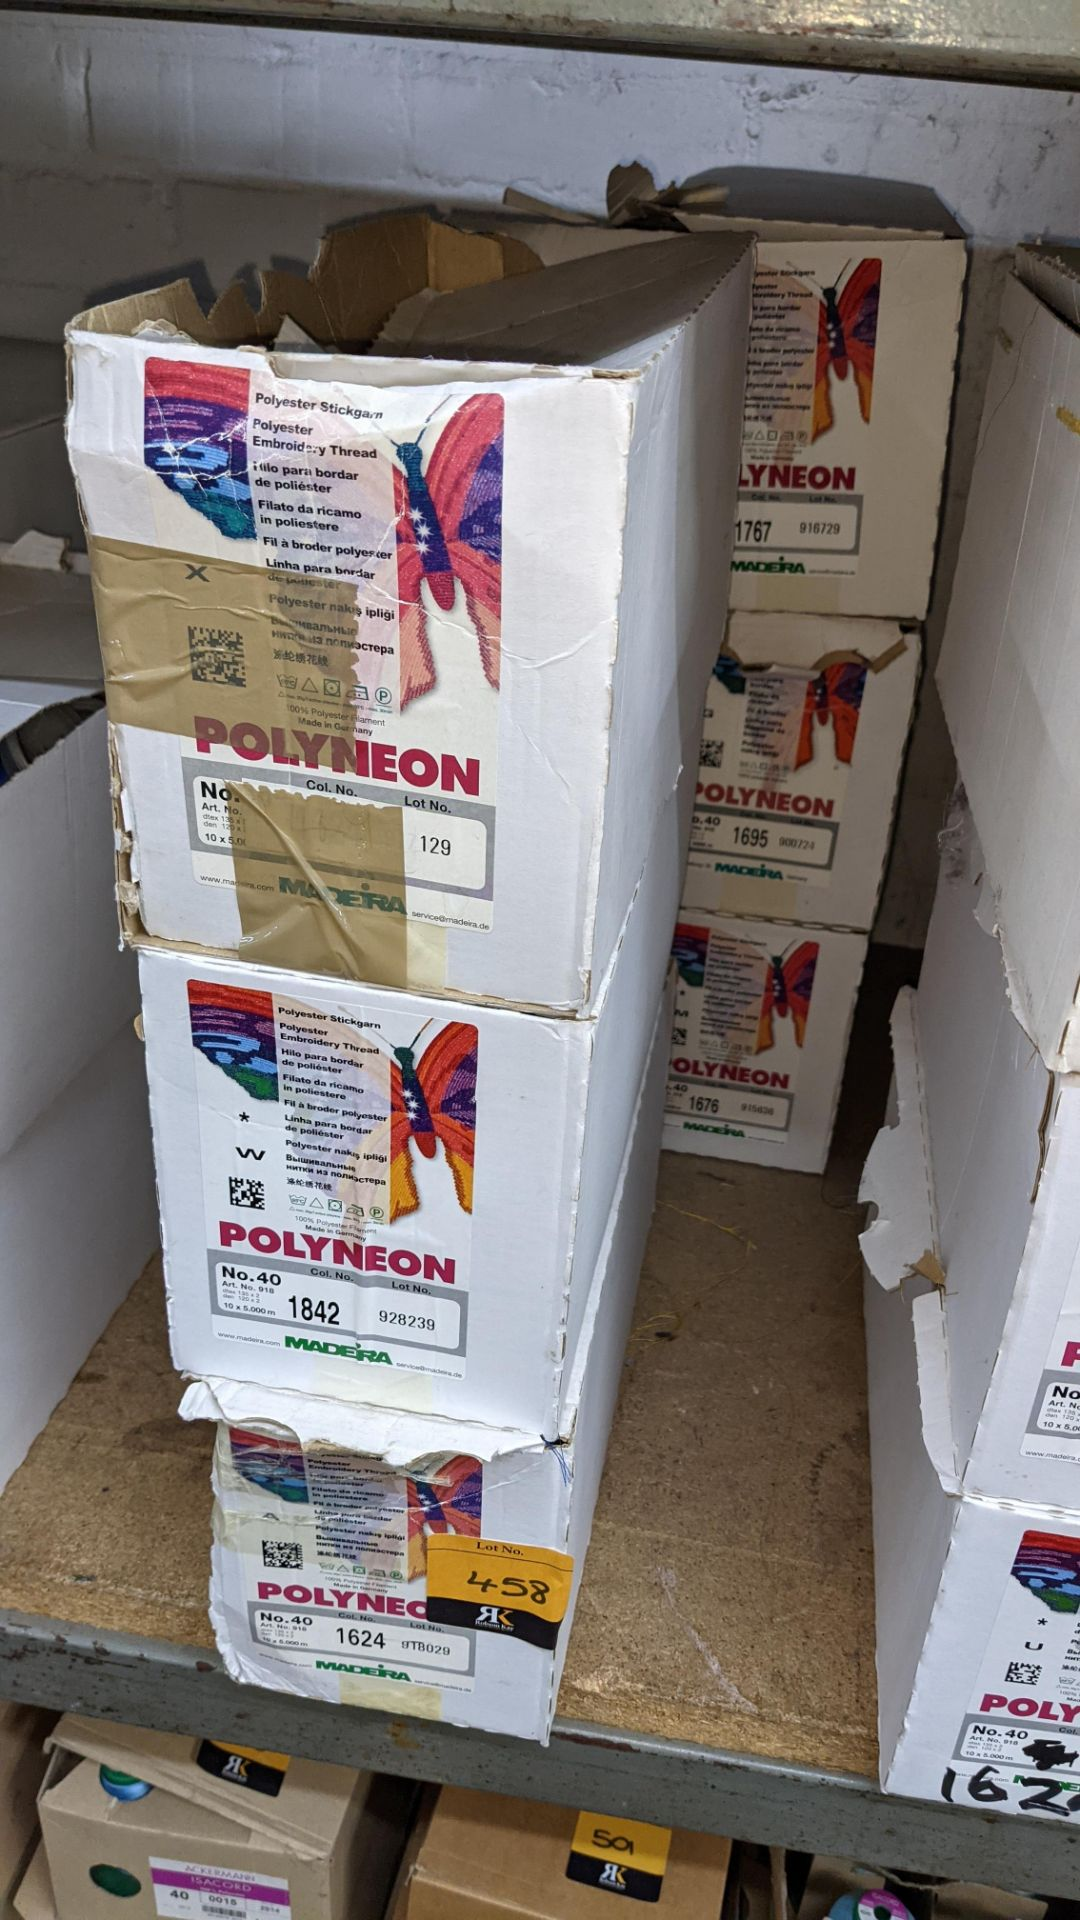 6 boxes of Madeira Polyneon No. 40 polyester embroidery thread - Image 2 of 7